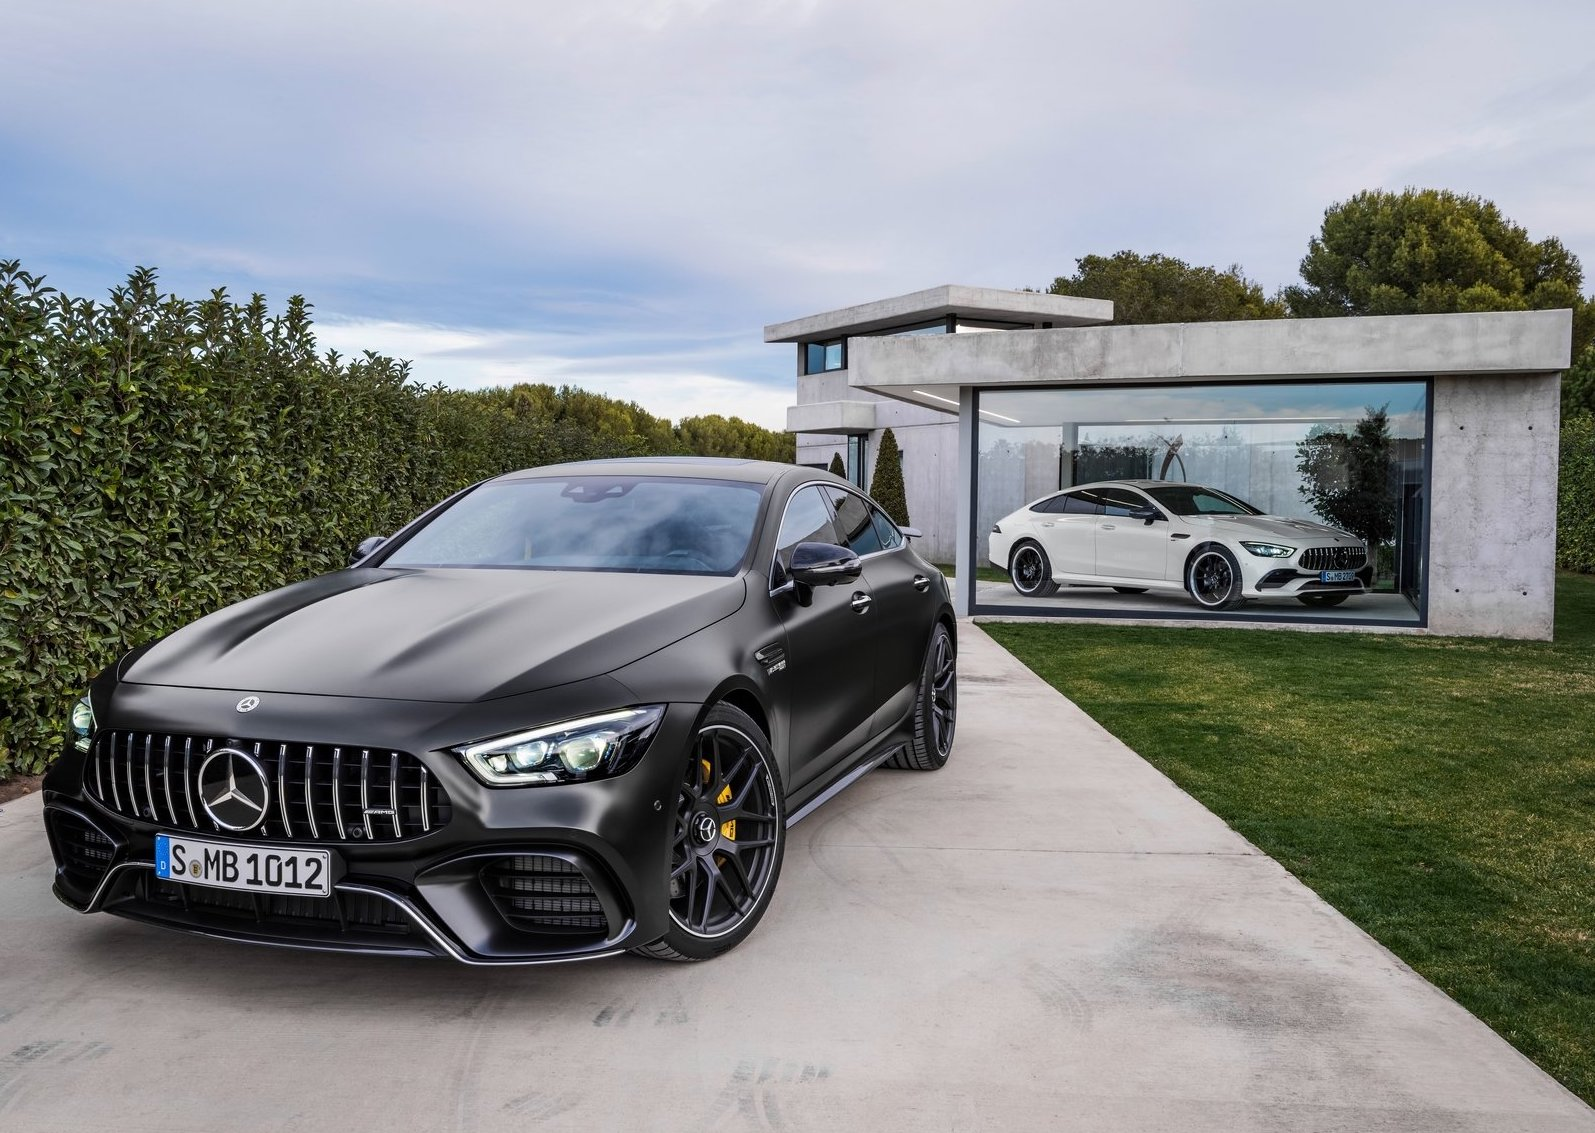 Mercedes-Benz AMG GT 4-door coupe (2019.)